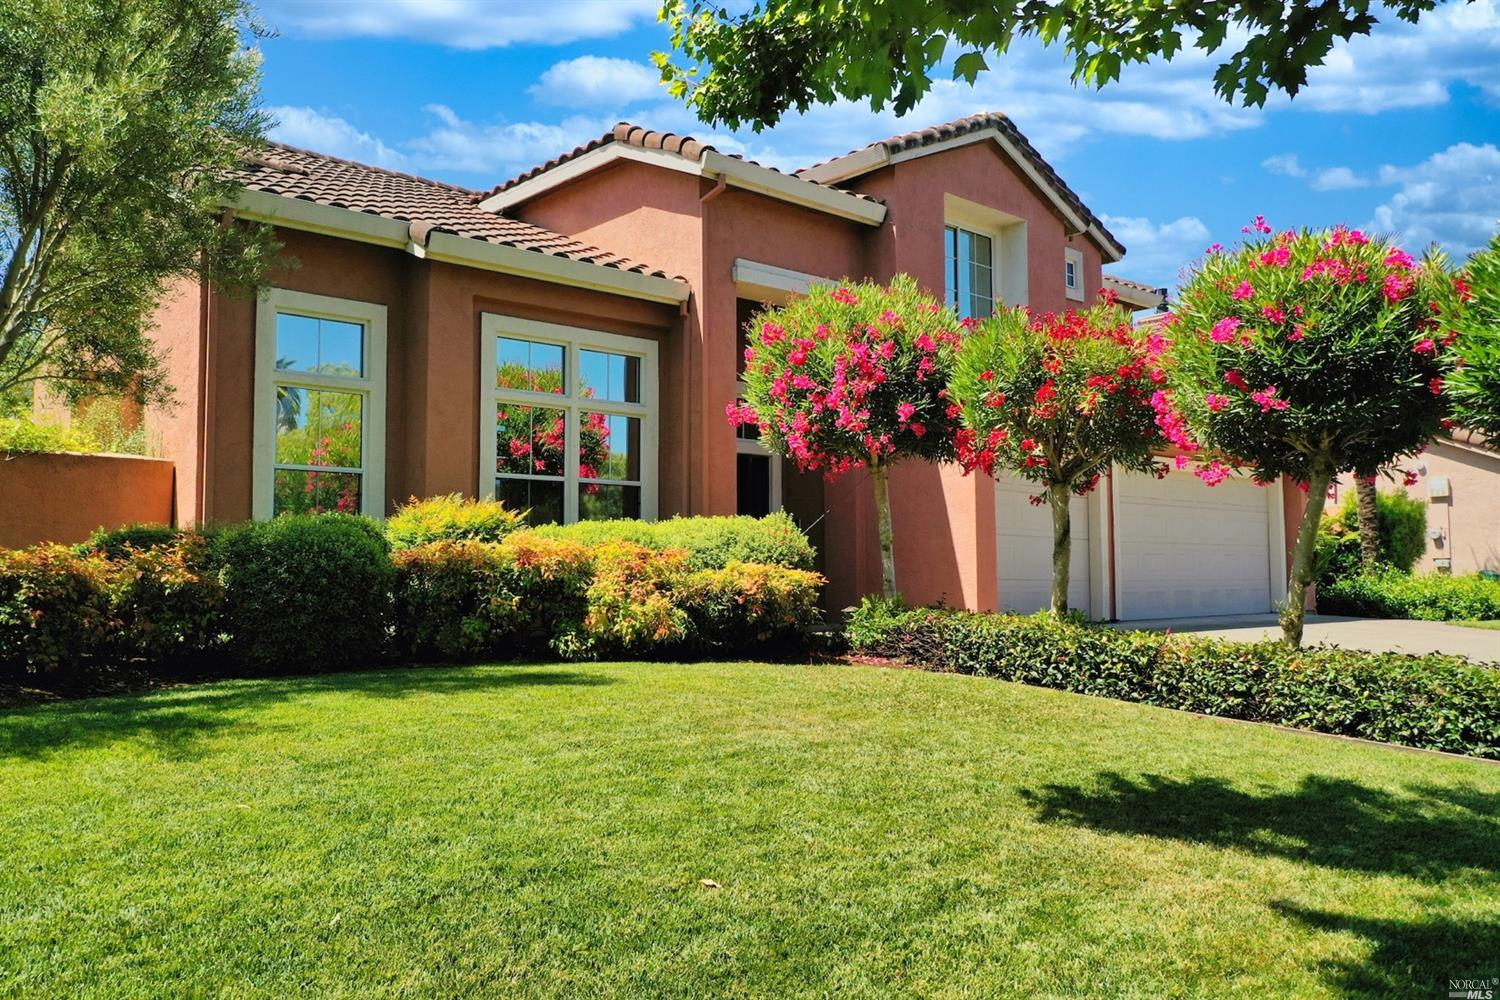 Napa Waterfront Sanctuary! Escape to the beautiful Napa Valley! Enjoy the lifestyle of this 4 bed/2.